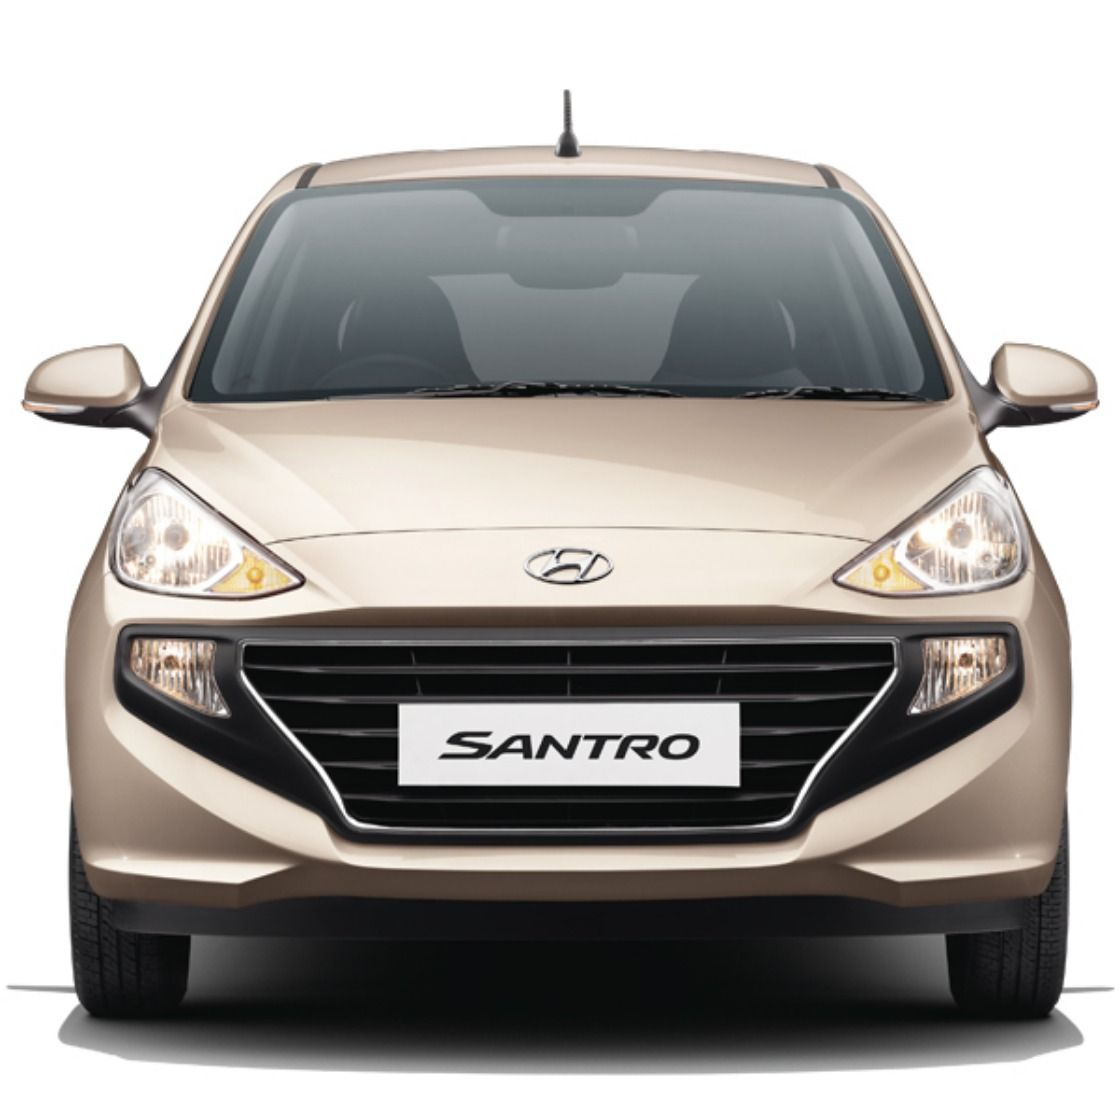 Presenting The All New Hyundai Santro The Remake Of The Most